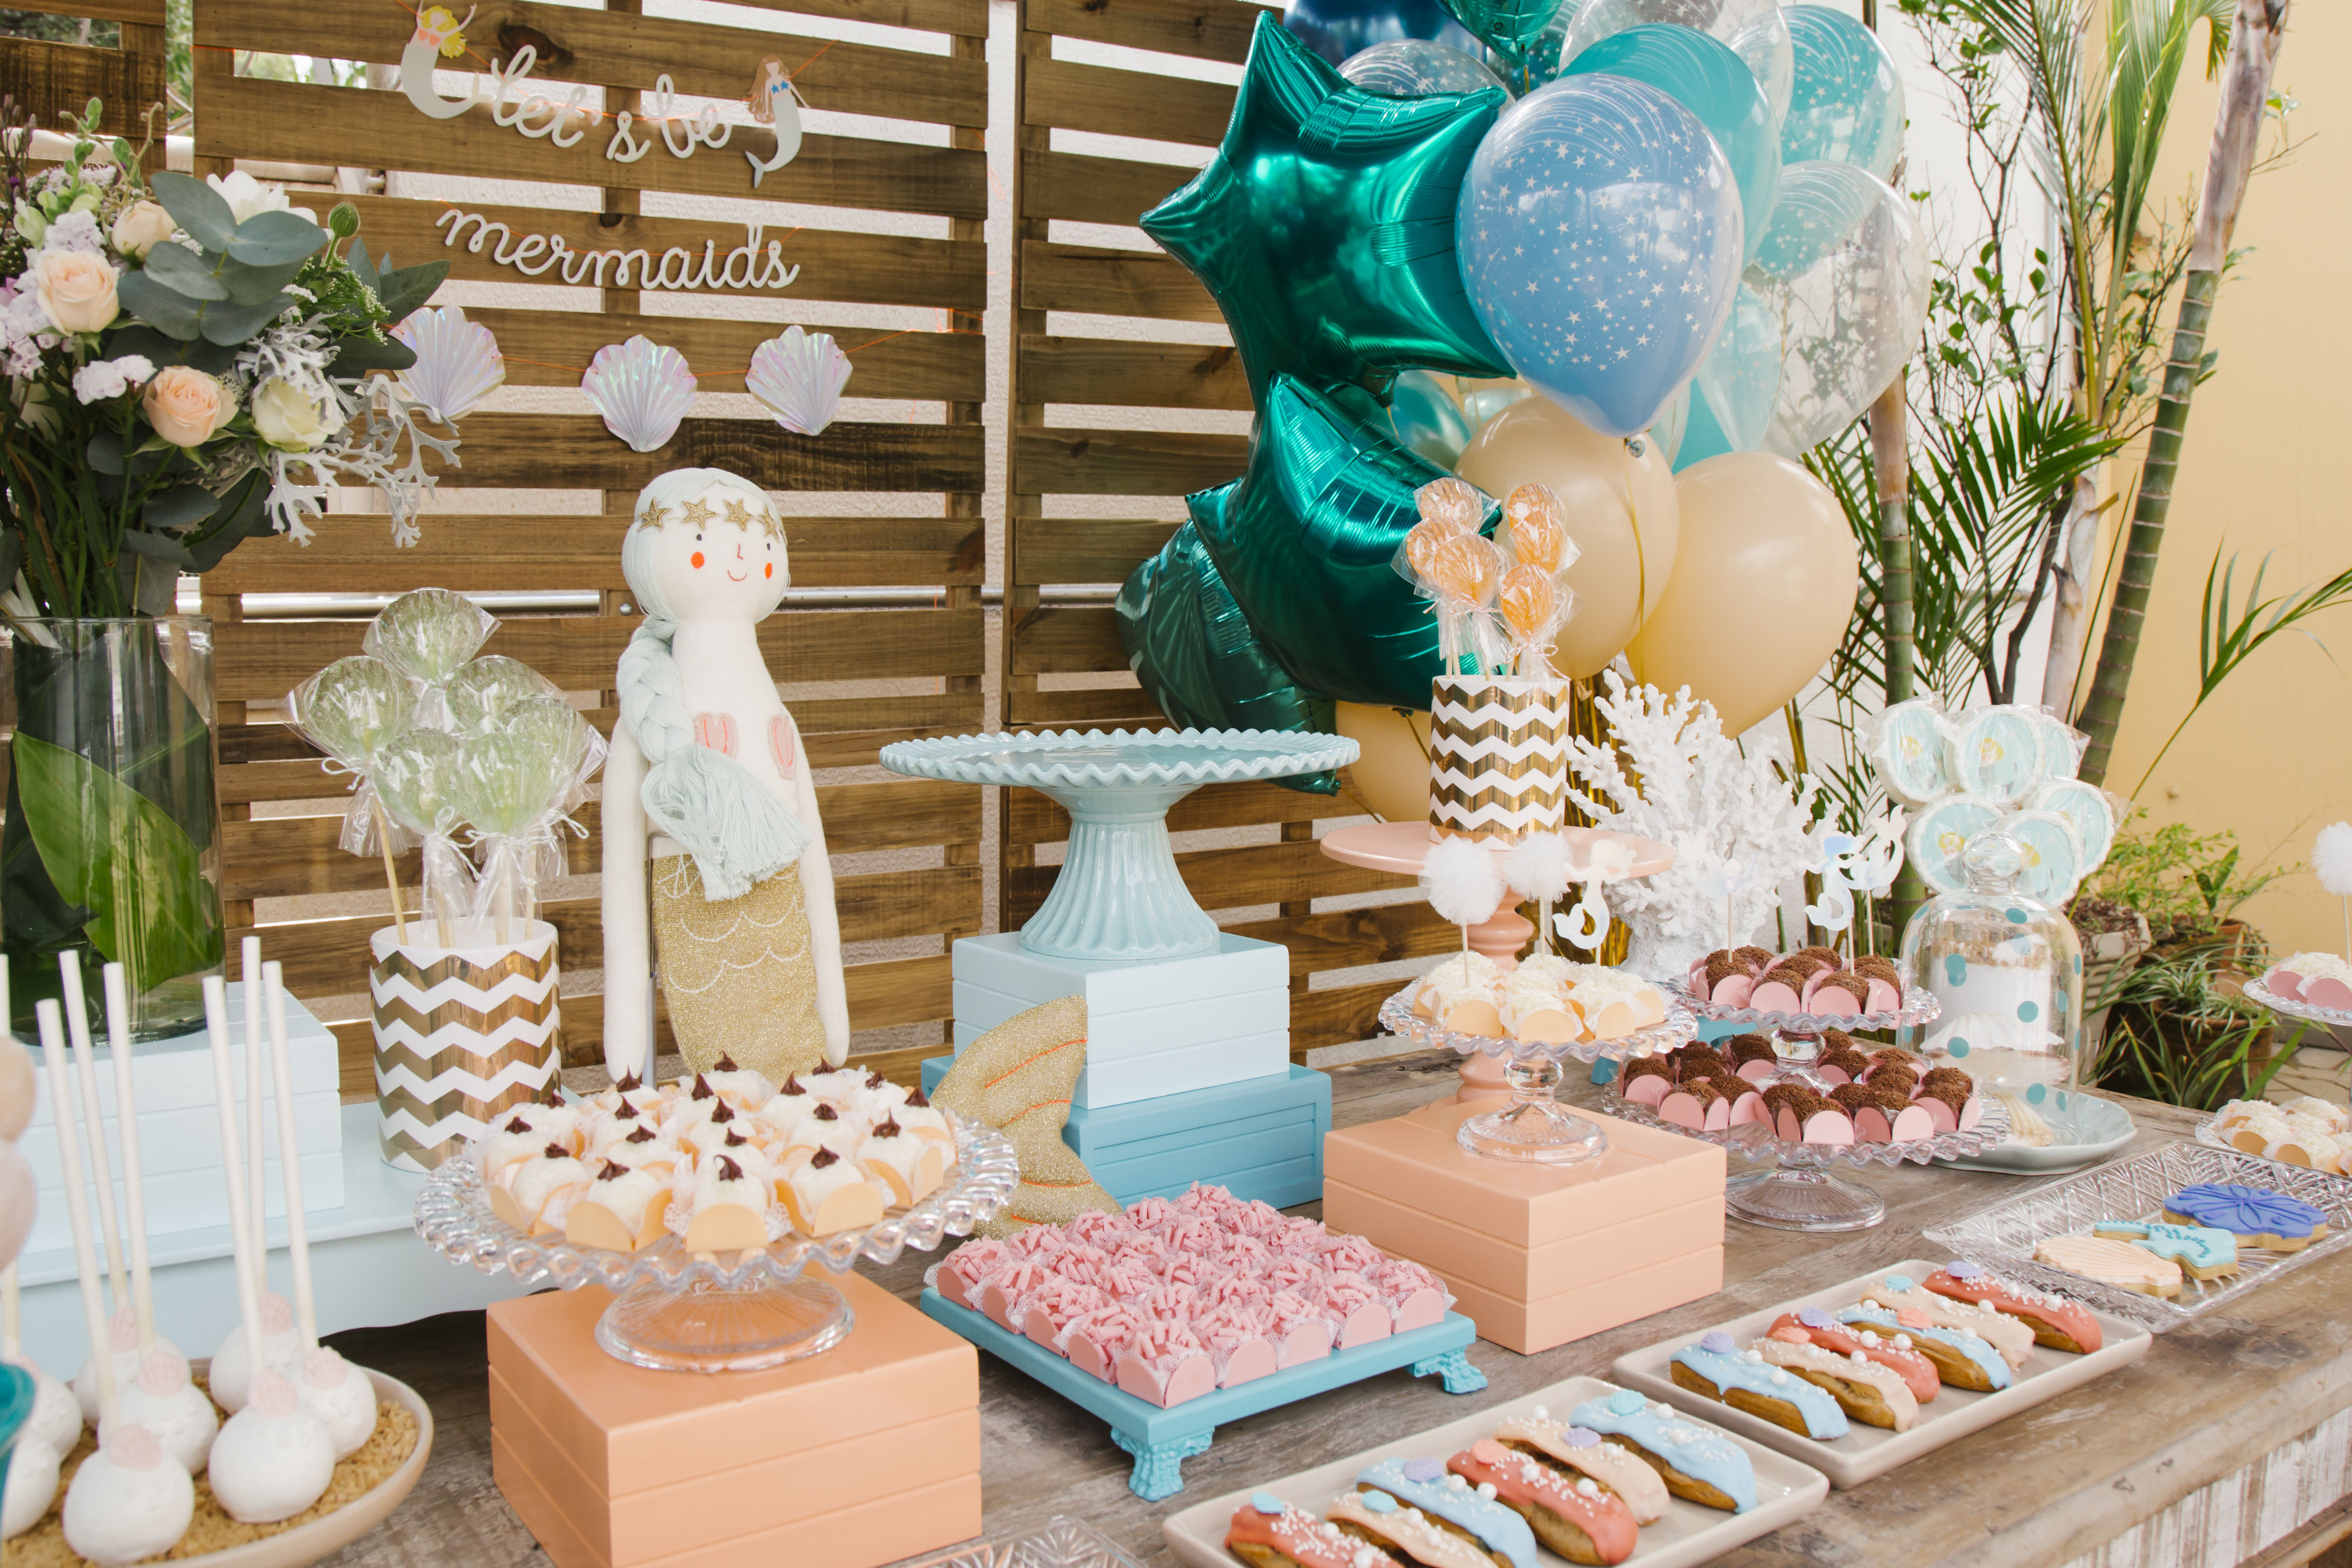 040818_penelope5anos_011